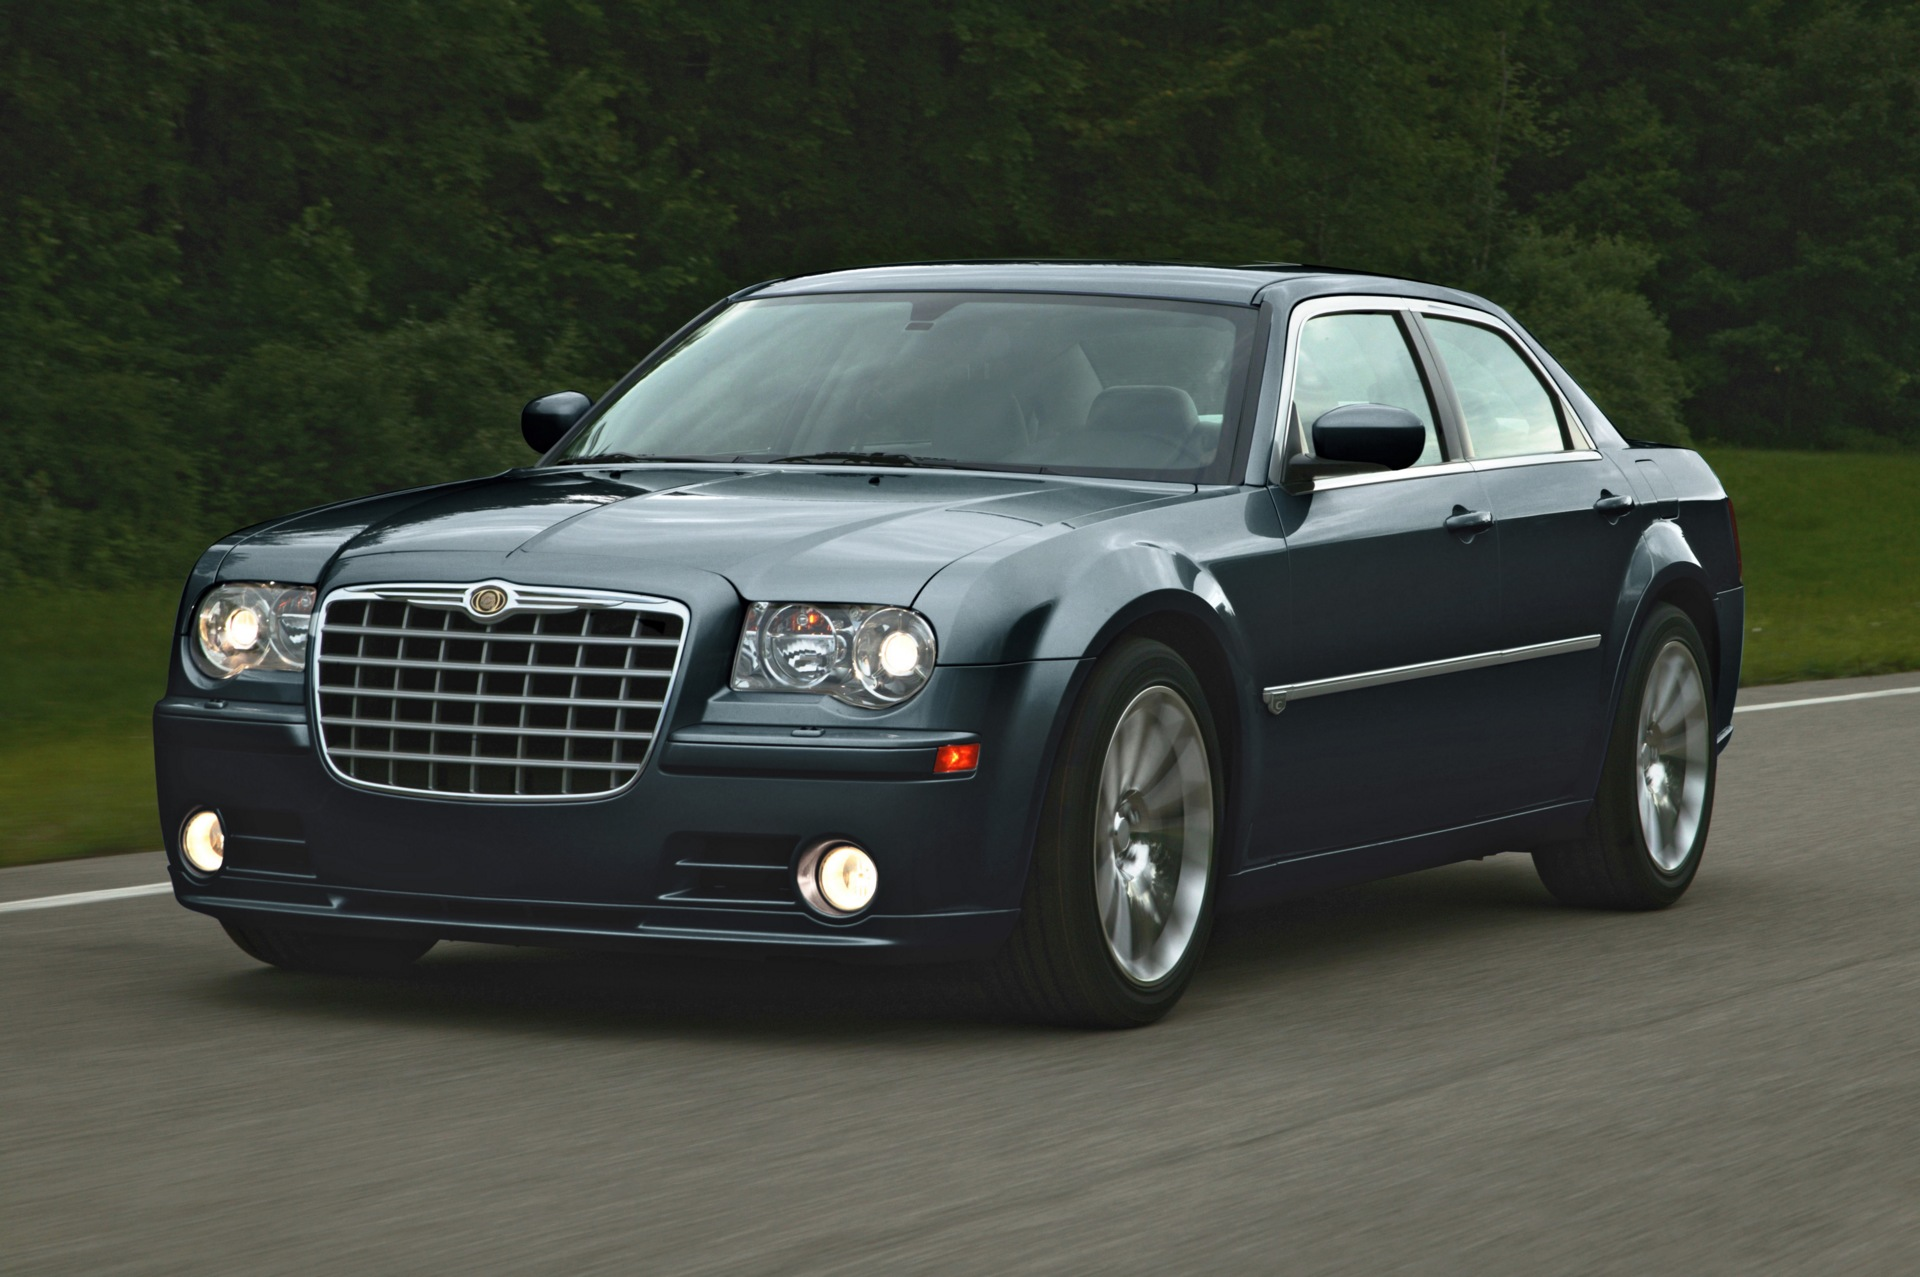 Bj Car Sales >> 2008 Chrysler 300 - conceptcarz.com